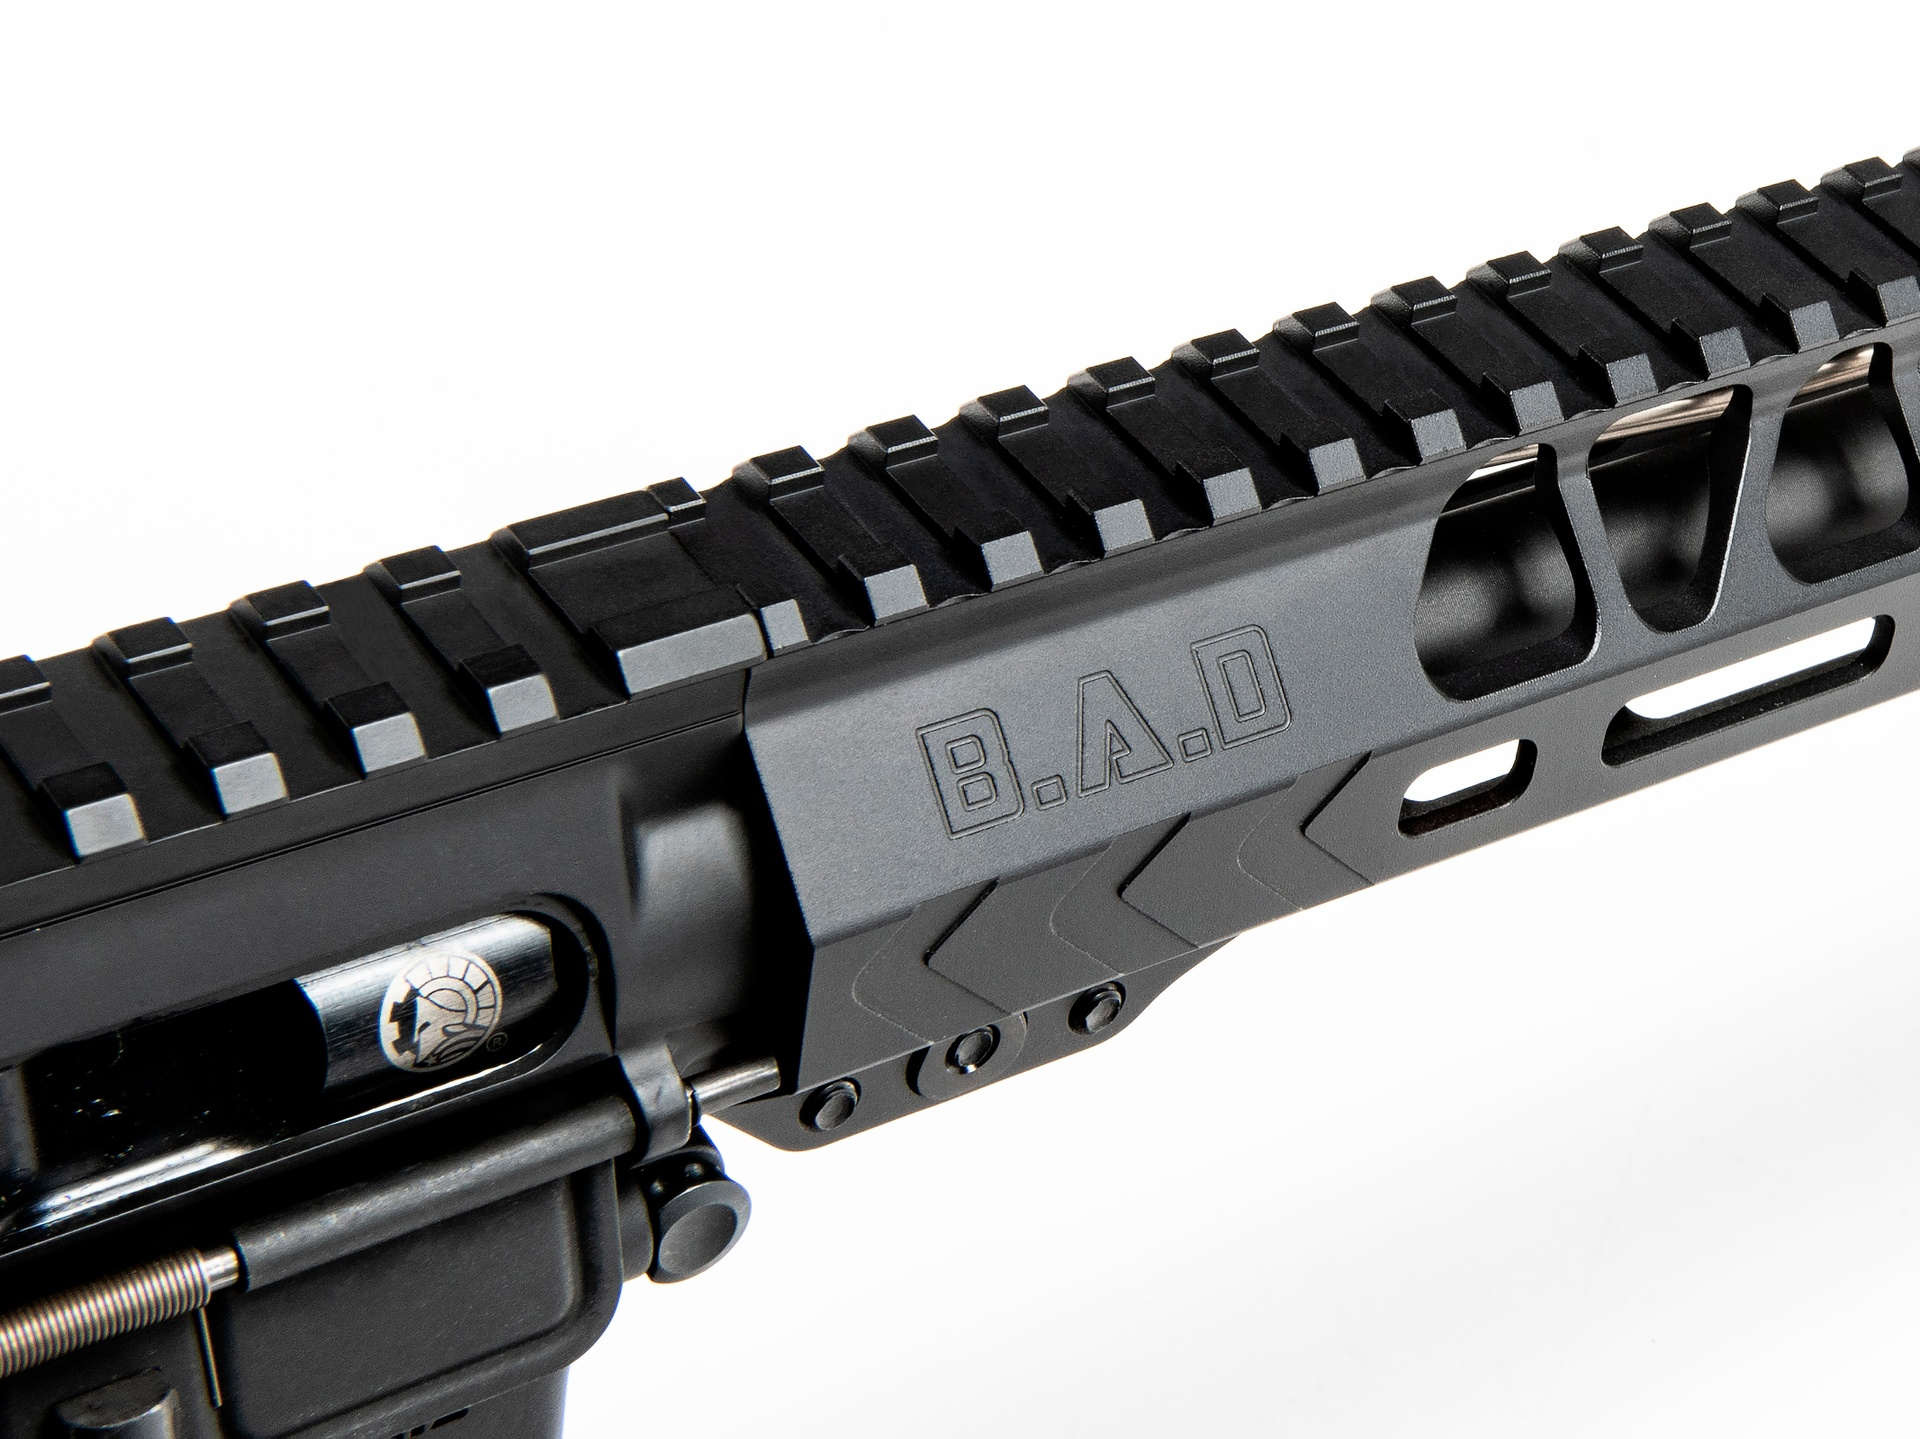 BATTLEARMS™ WORKHORSE 13in Free Float Rail